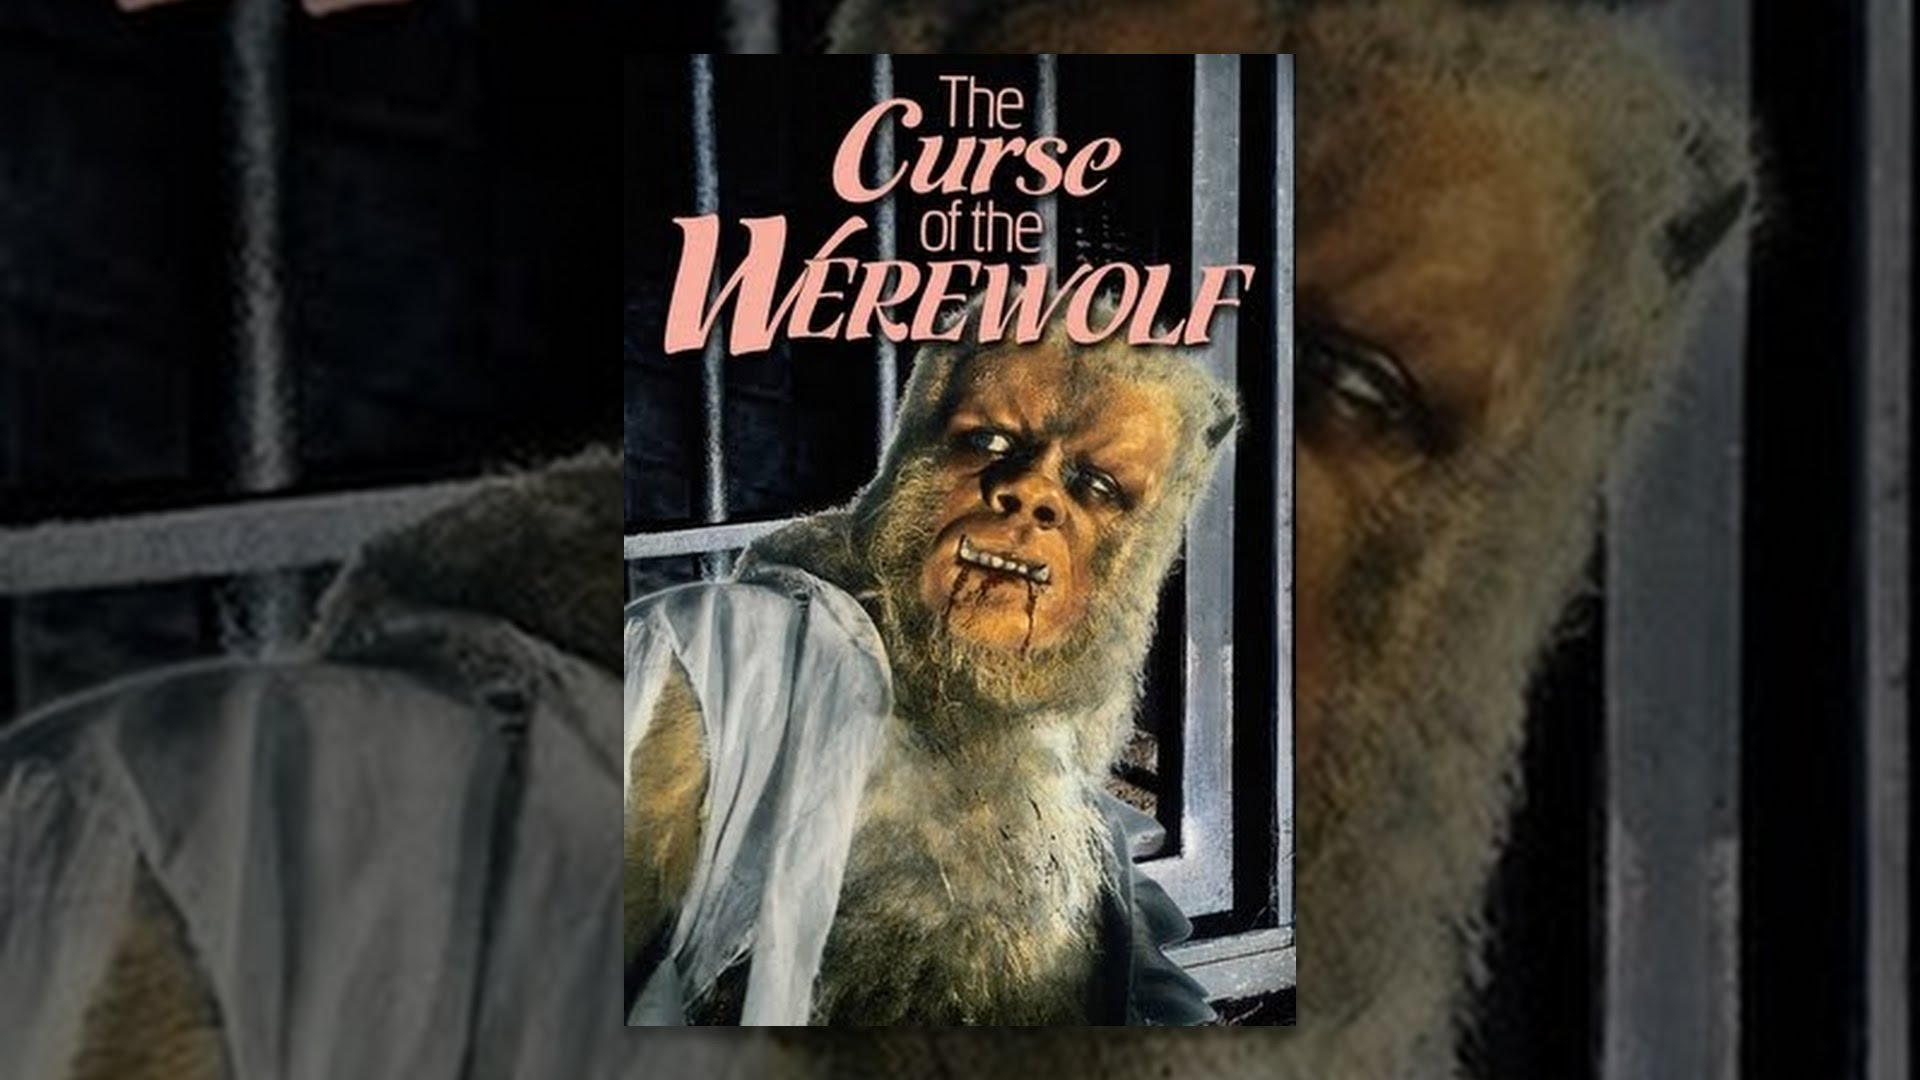 Werewolves Curse